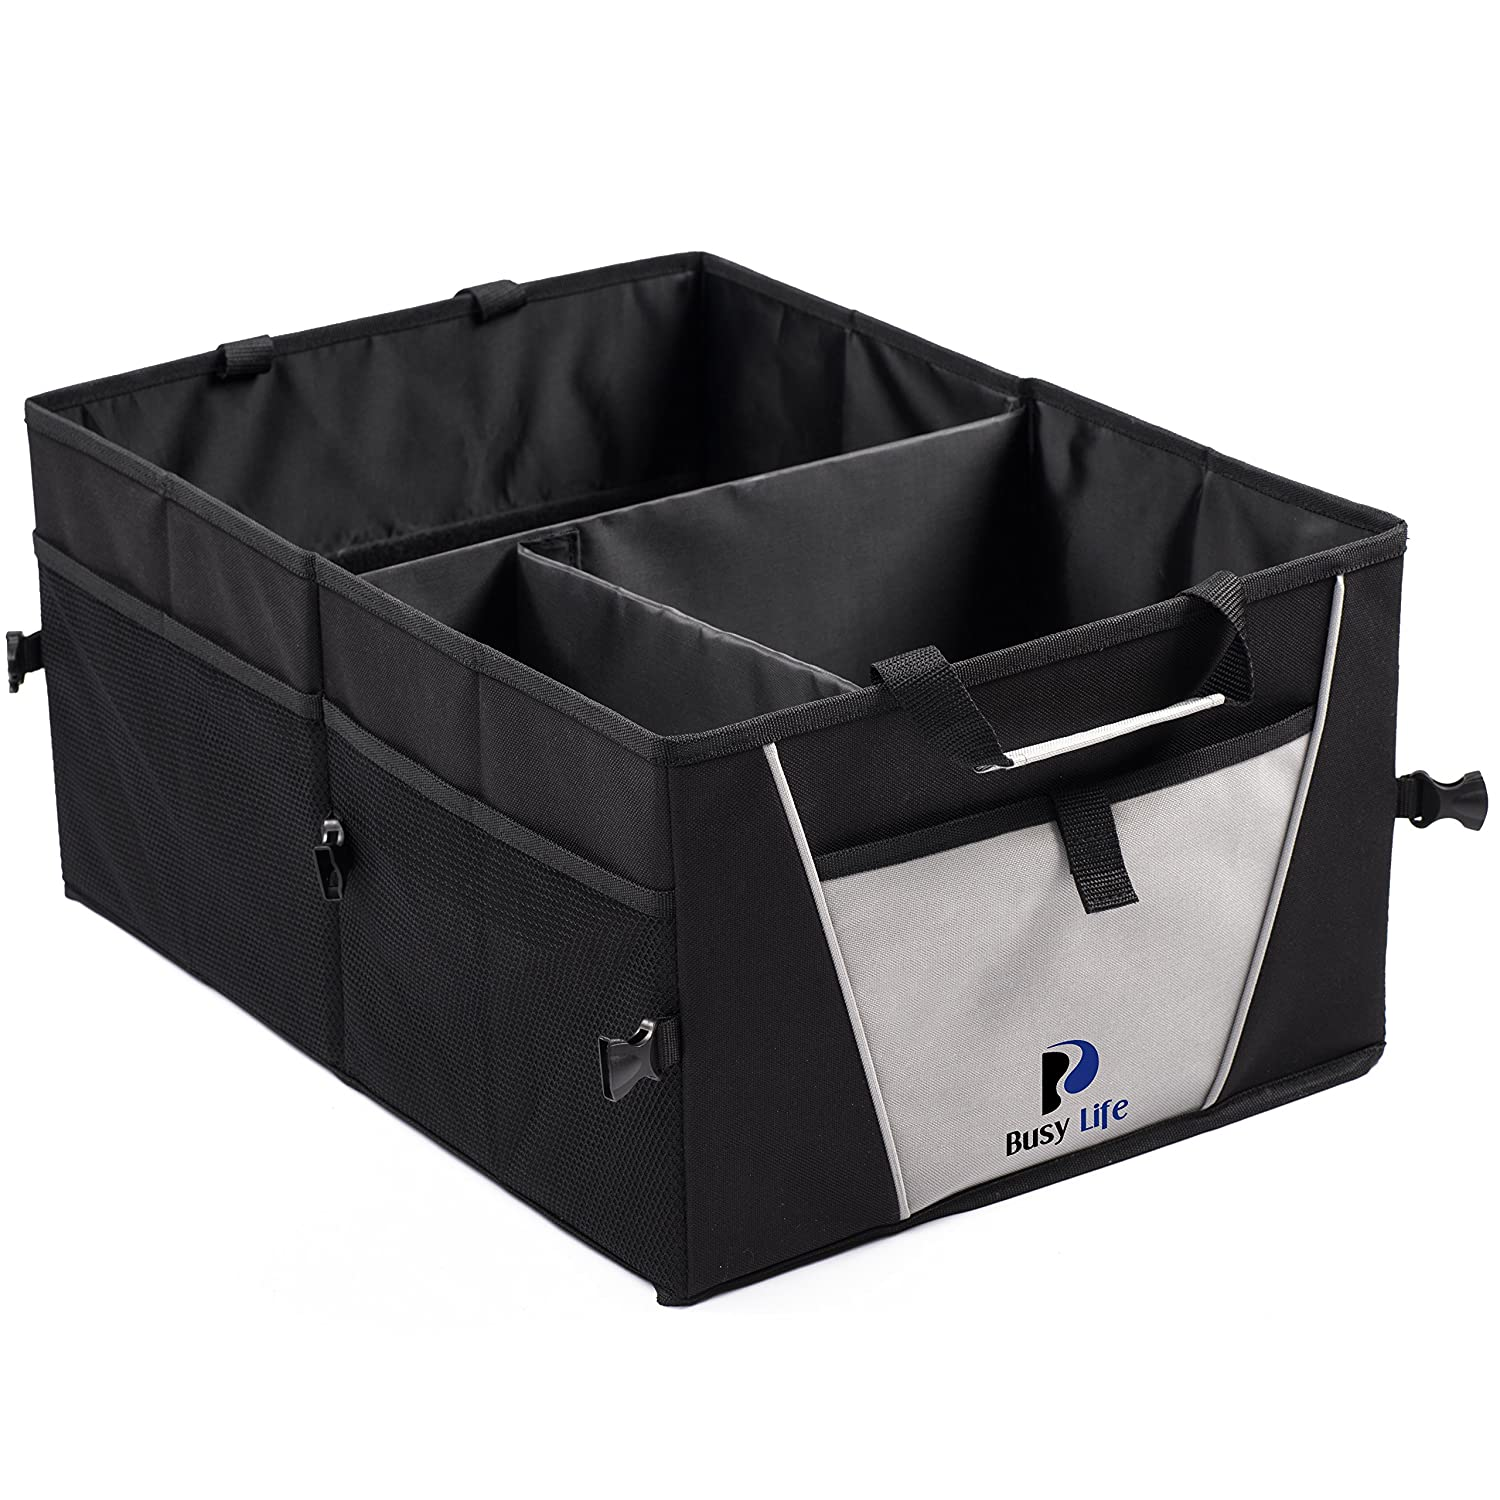 Best Top Quality Car Trunk Storage Containers And Bins Organizers